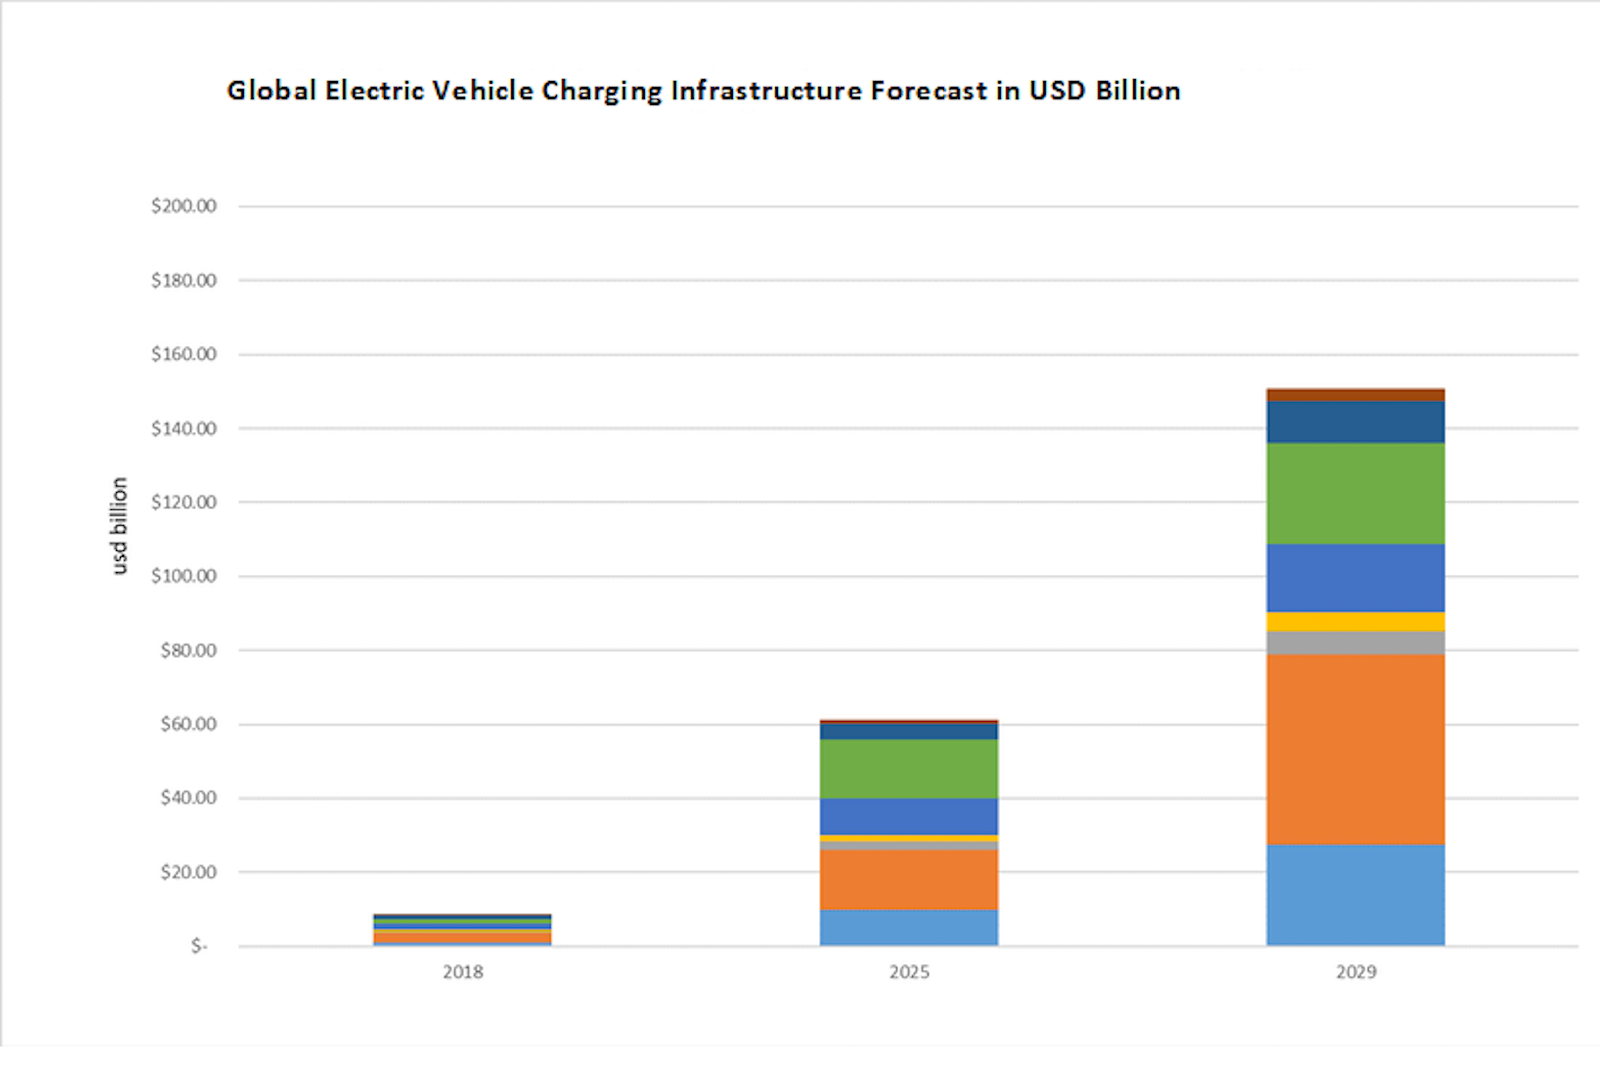 Electric Vehicle Charging Infrastructure 2019-2029: Forecast